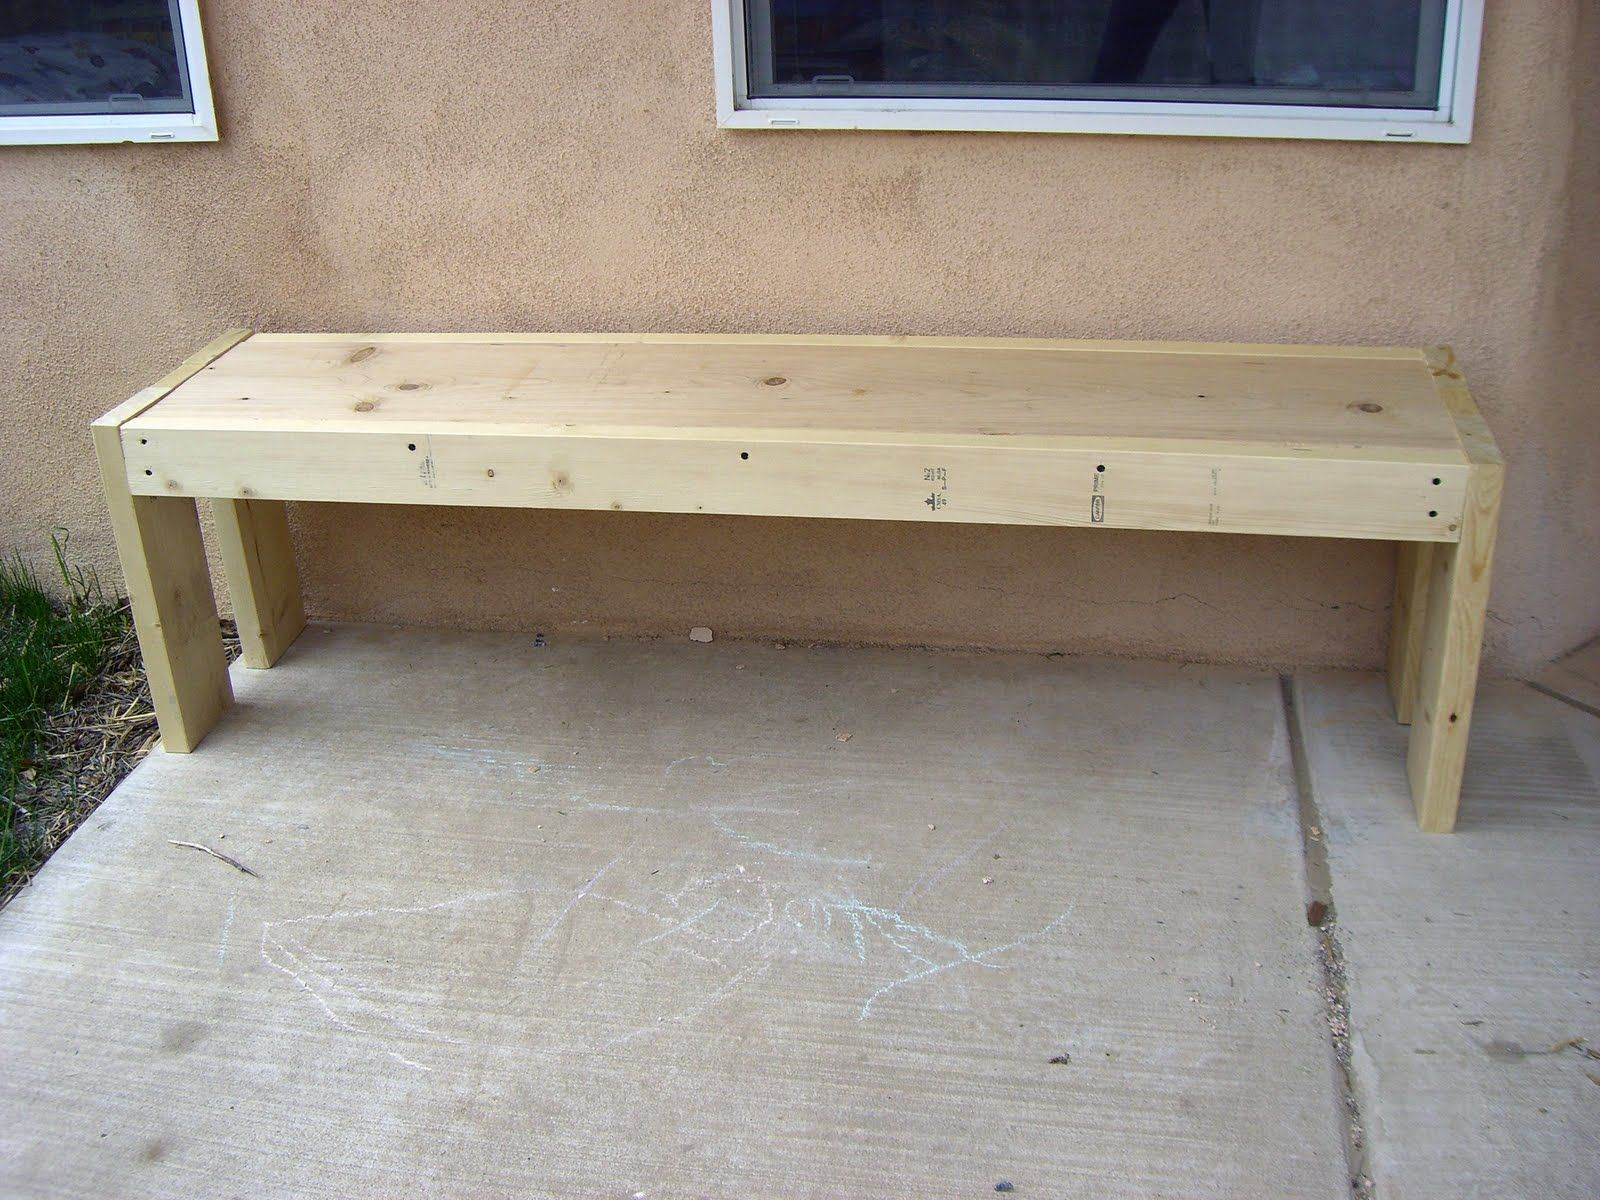 Beautiful Indoor Bench Ideas Part - 5: Indoor Bench Plans Or Browse Here Are Some Ideas For Building A Bench For  Your Indoor Or Outdoor Use Free Woodworking Plans To Build All Sorts Of  Benches